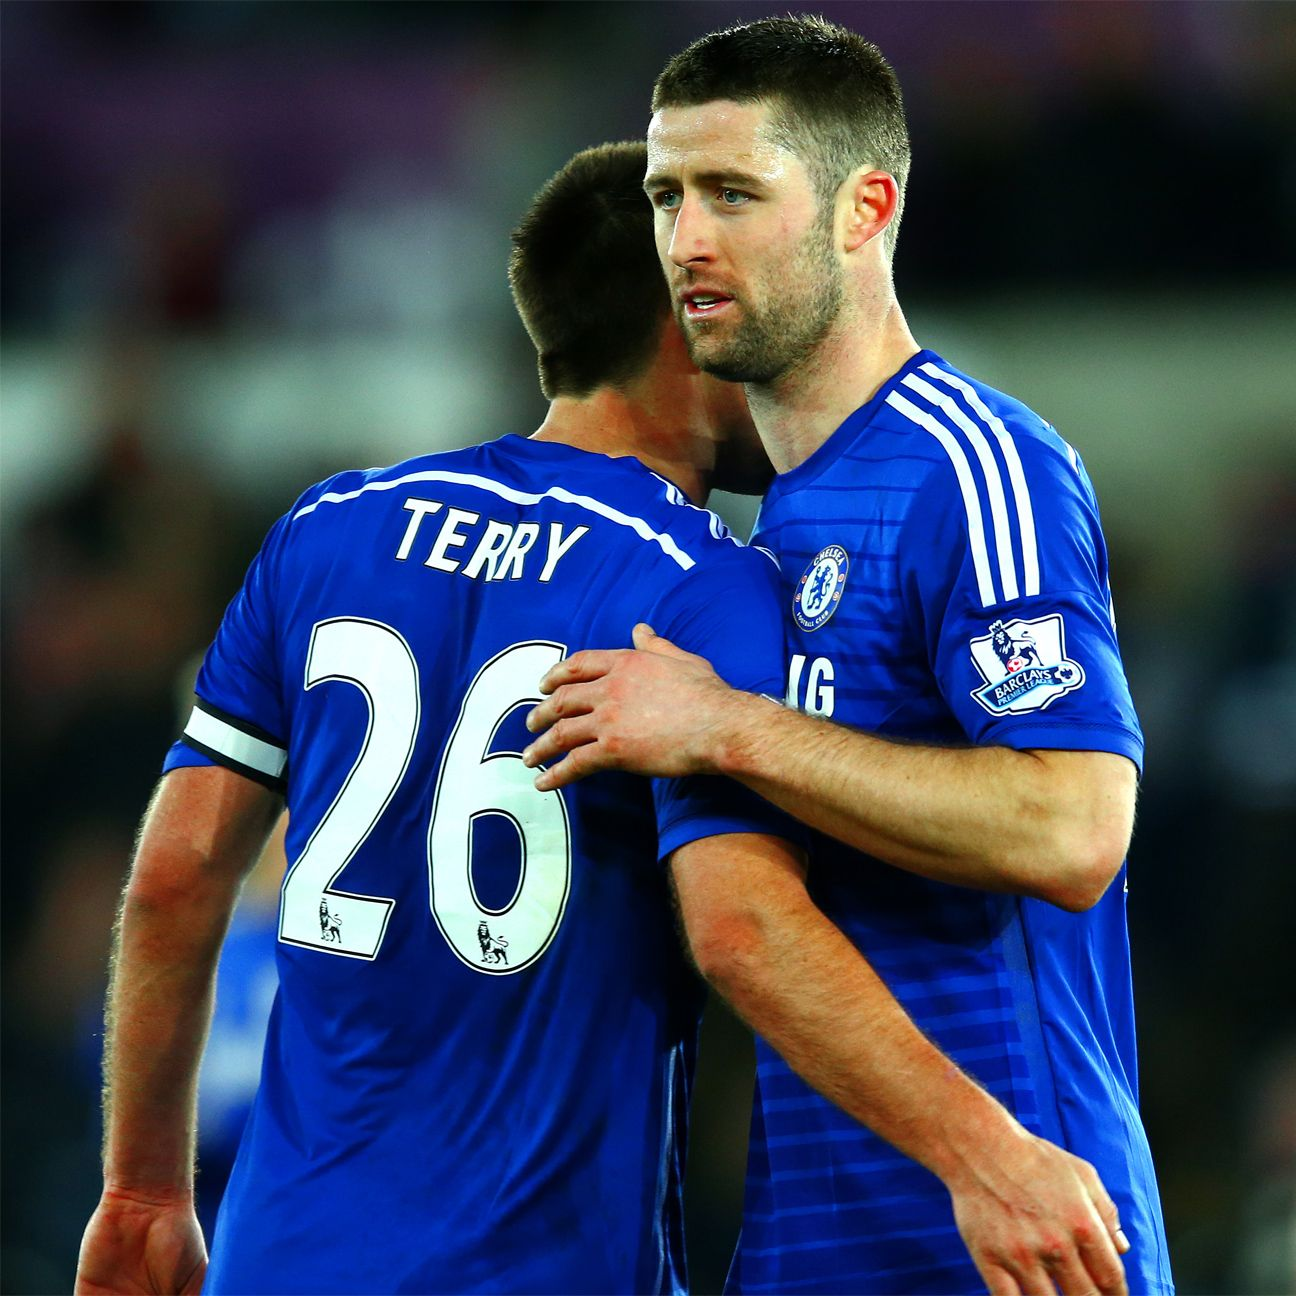 Gary Cahill and John Terry helped the Chelsea defence secure their third straight clean sheet on Saturday versus Swansea.